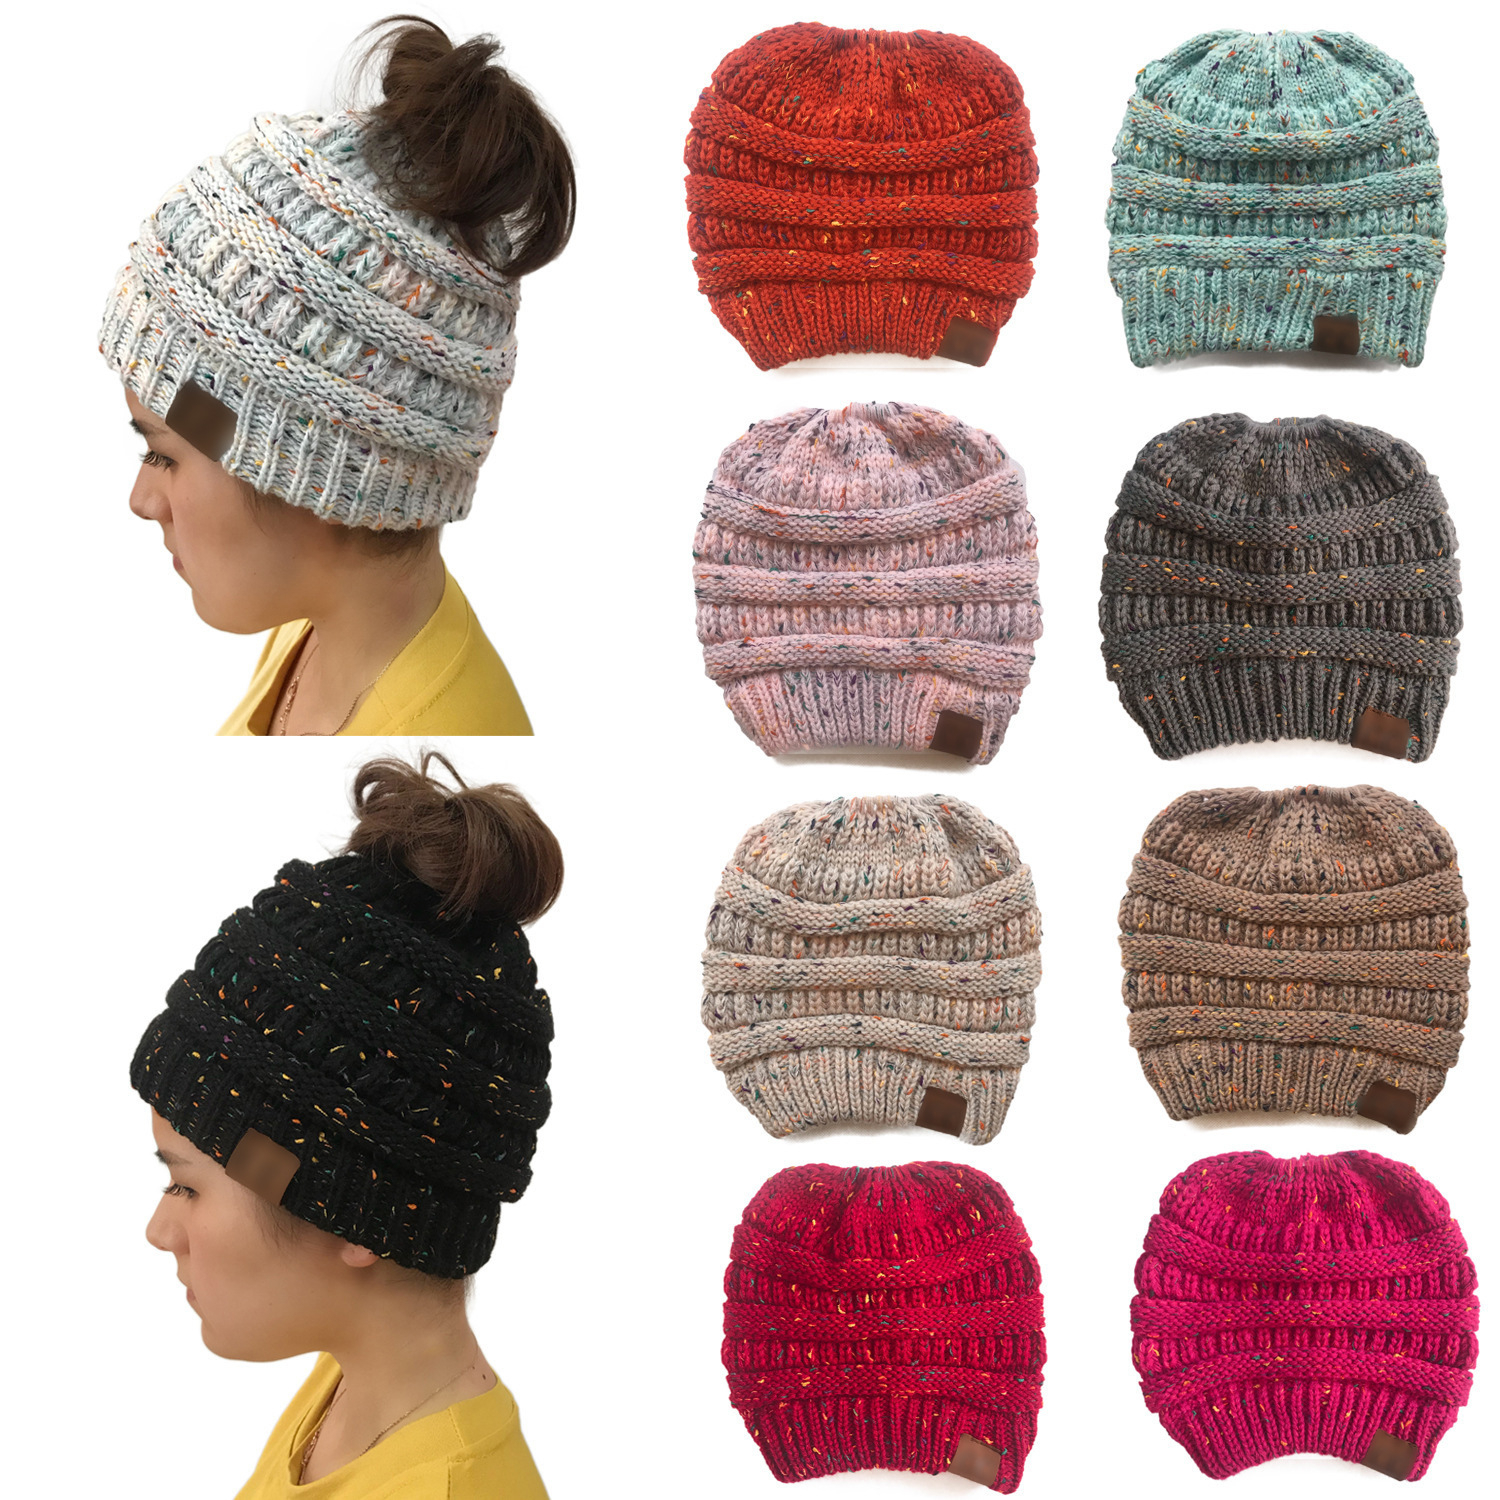 Women's Girls Stretch Knitted Wool Crochet Hats Caps Messy Bun Ponytail   Beanie   Holey Warm Hat Winter Warm Cap   Beanies